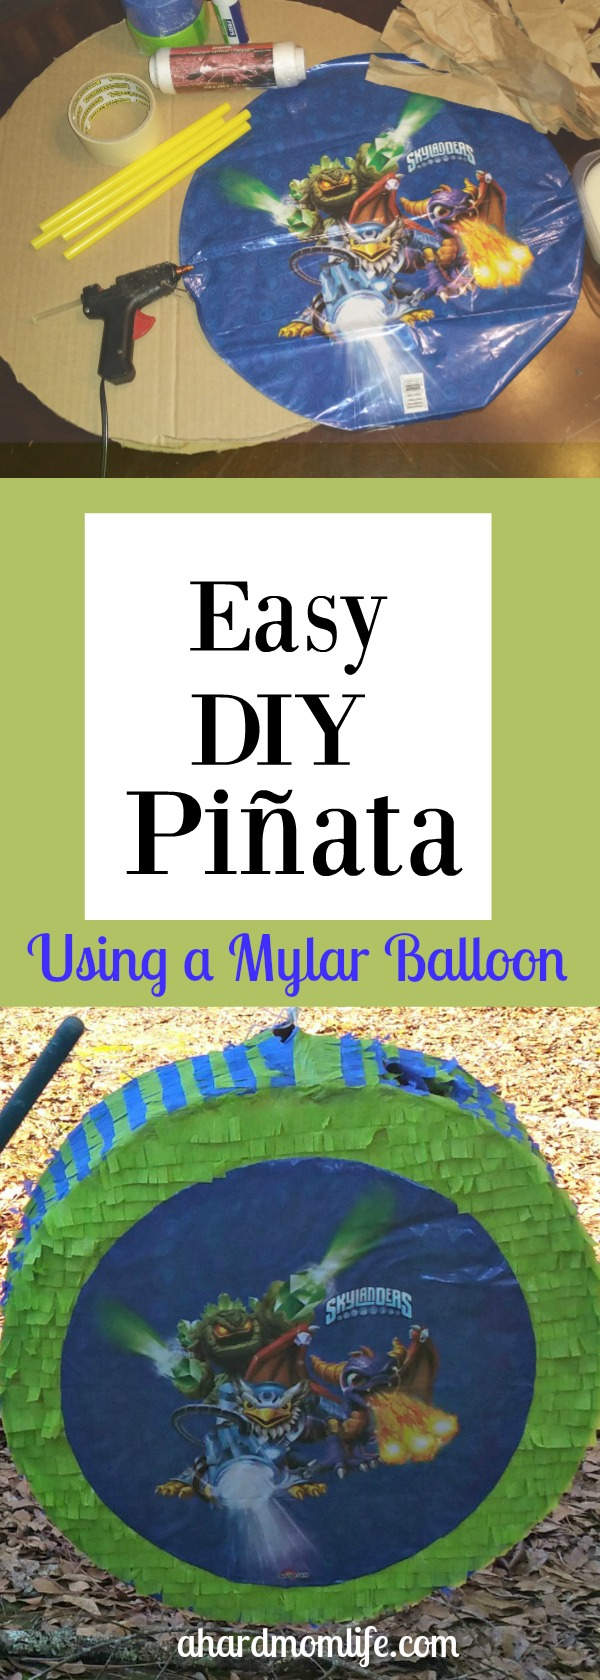 Making your own pinata doesn't get much easier. Add decoration and a fun game to your next party without much effort.